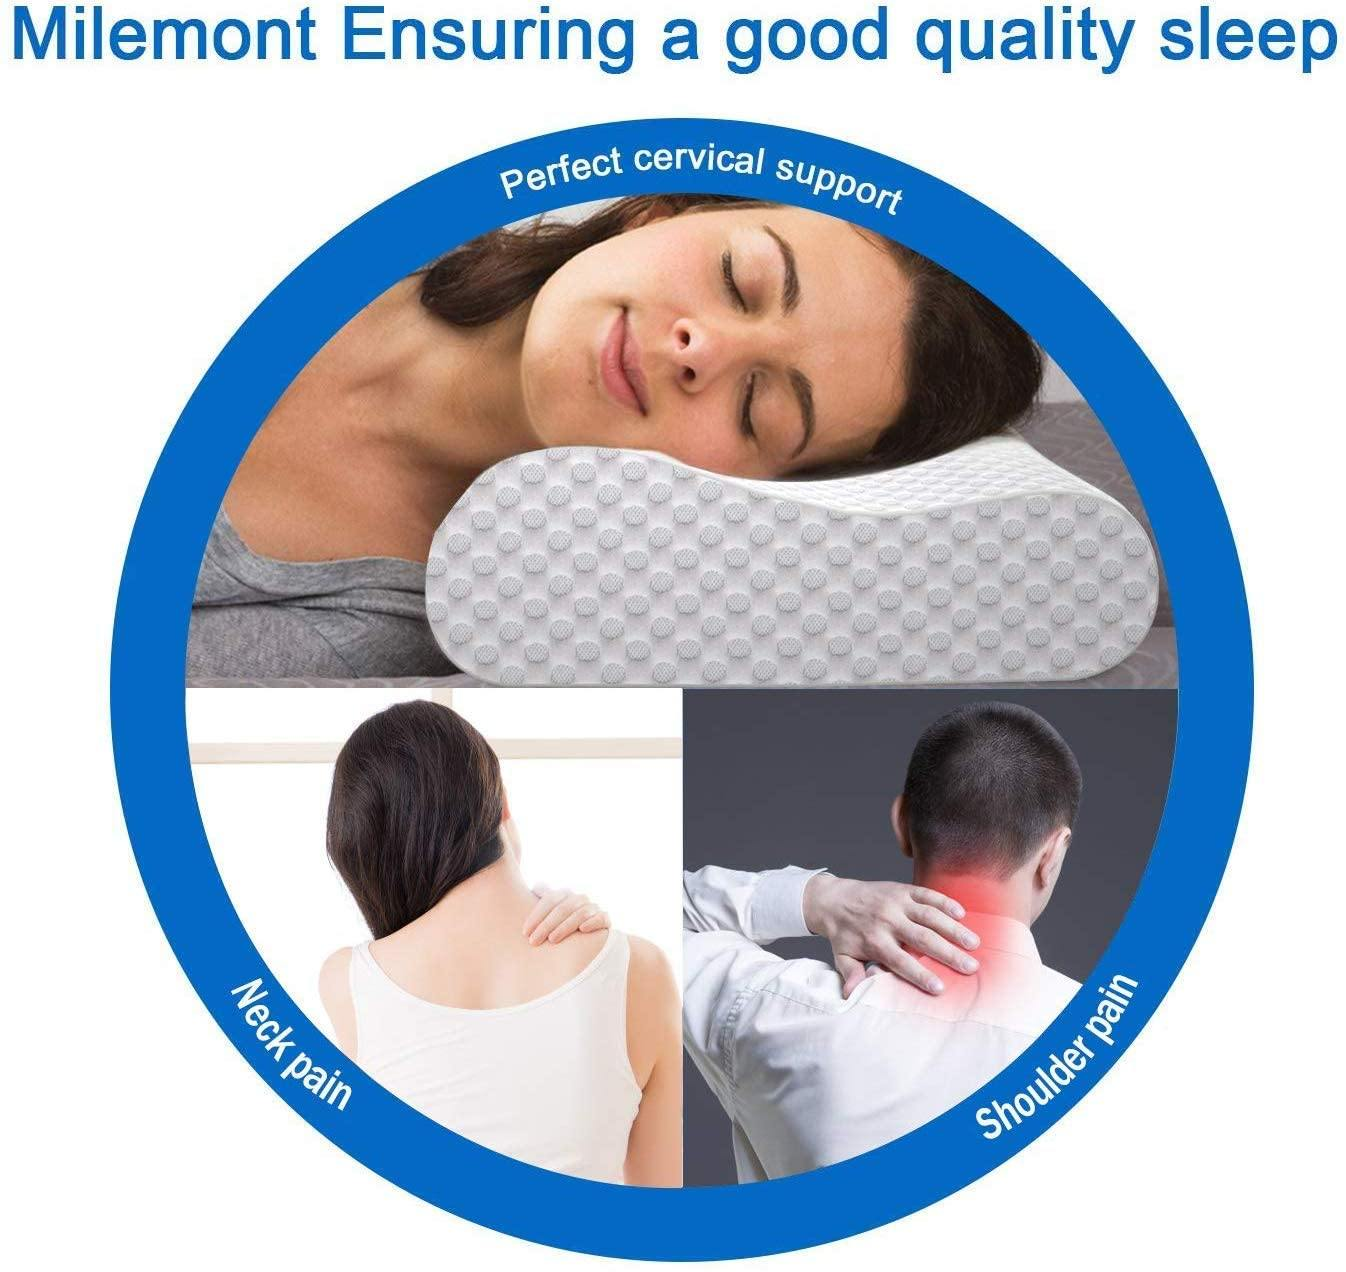 Milemont Memory Foam Pillow, Adjustable Contour Pillow for Neck Pain, Orthopedic Contour Pillow